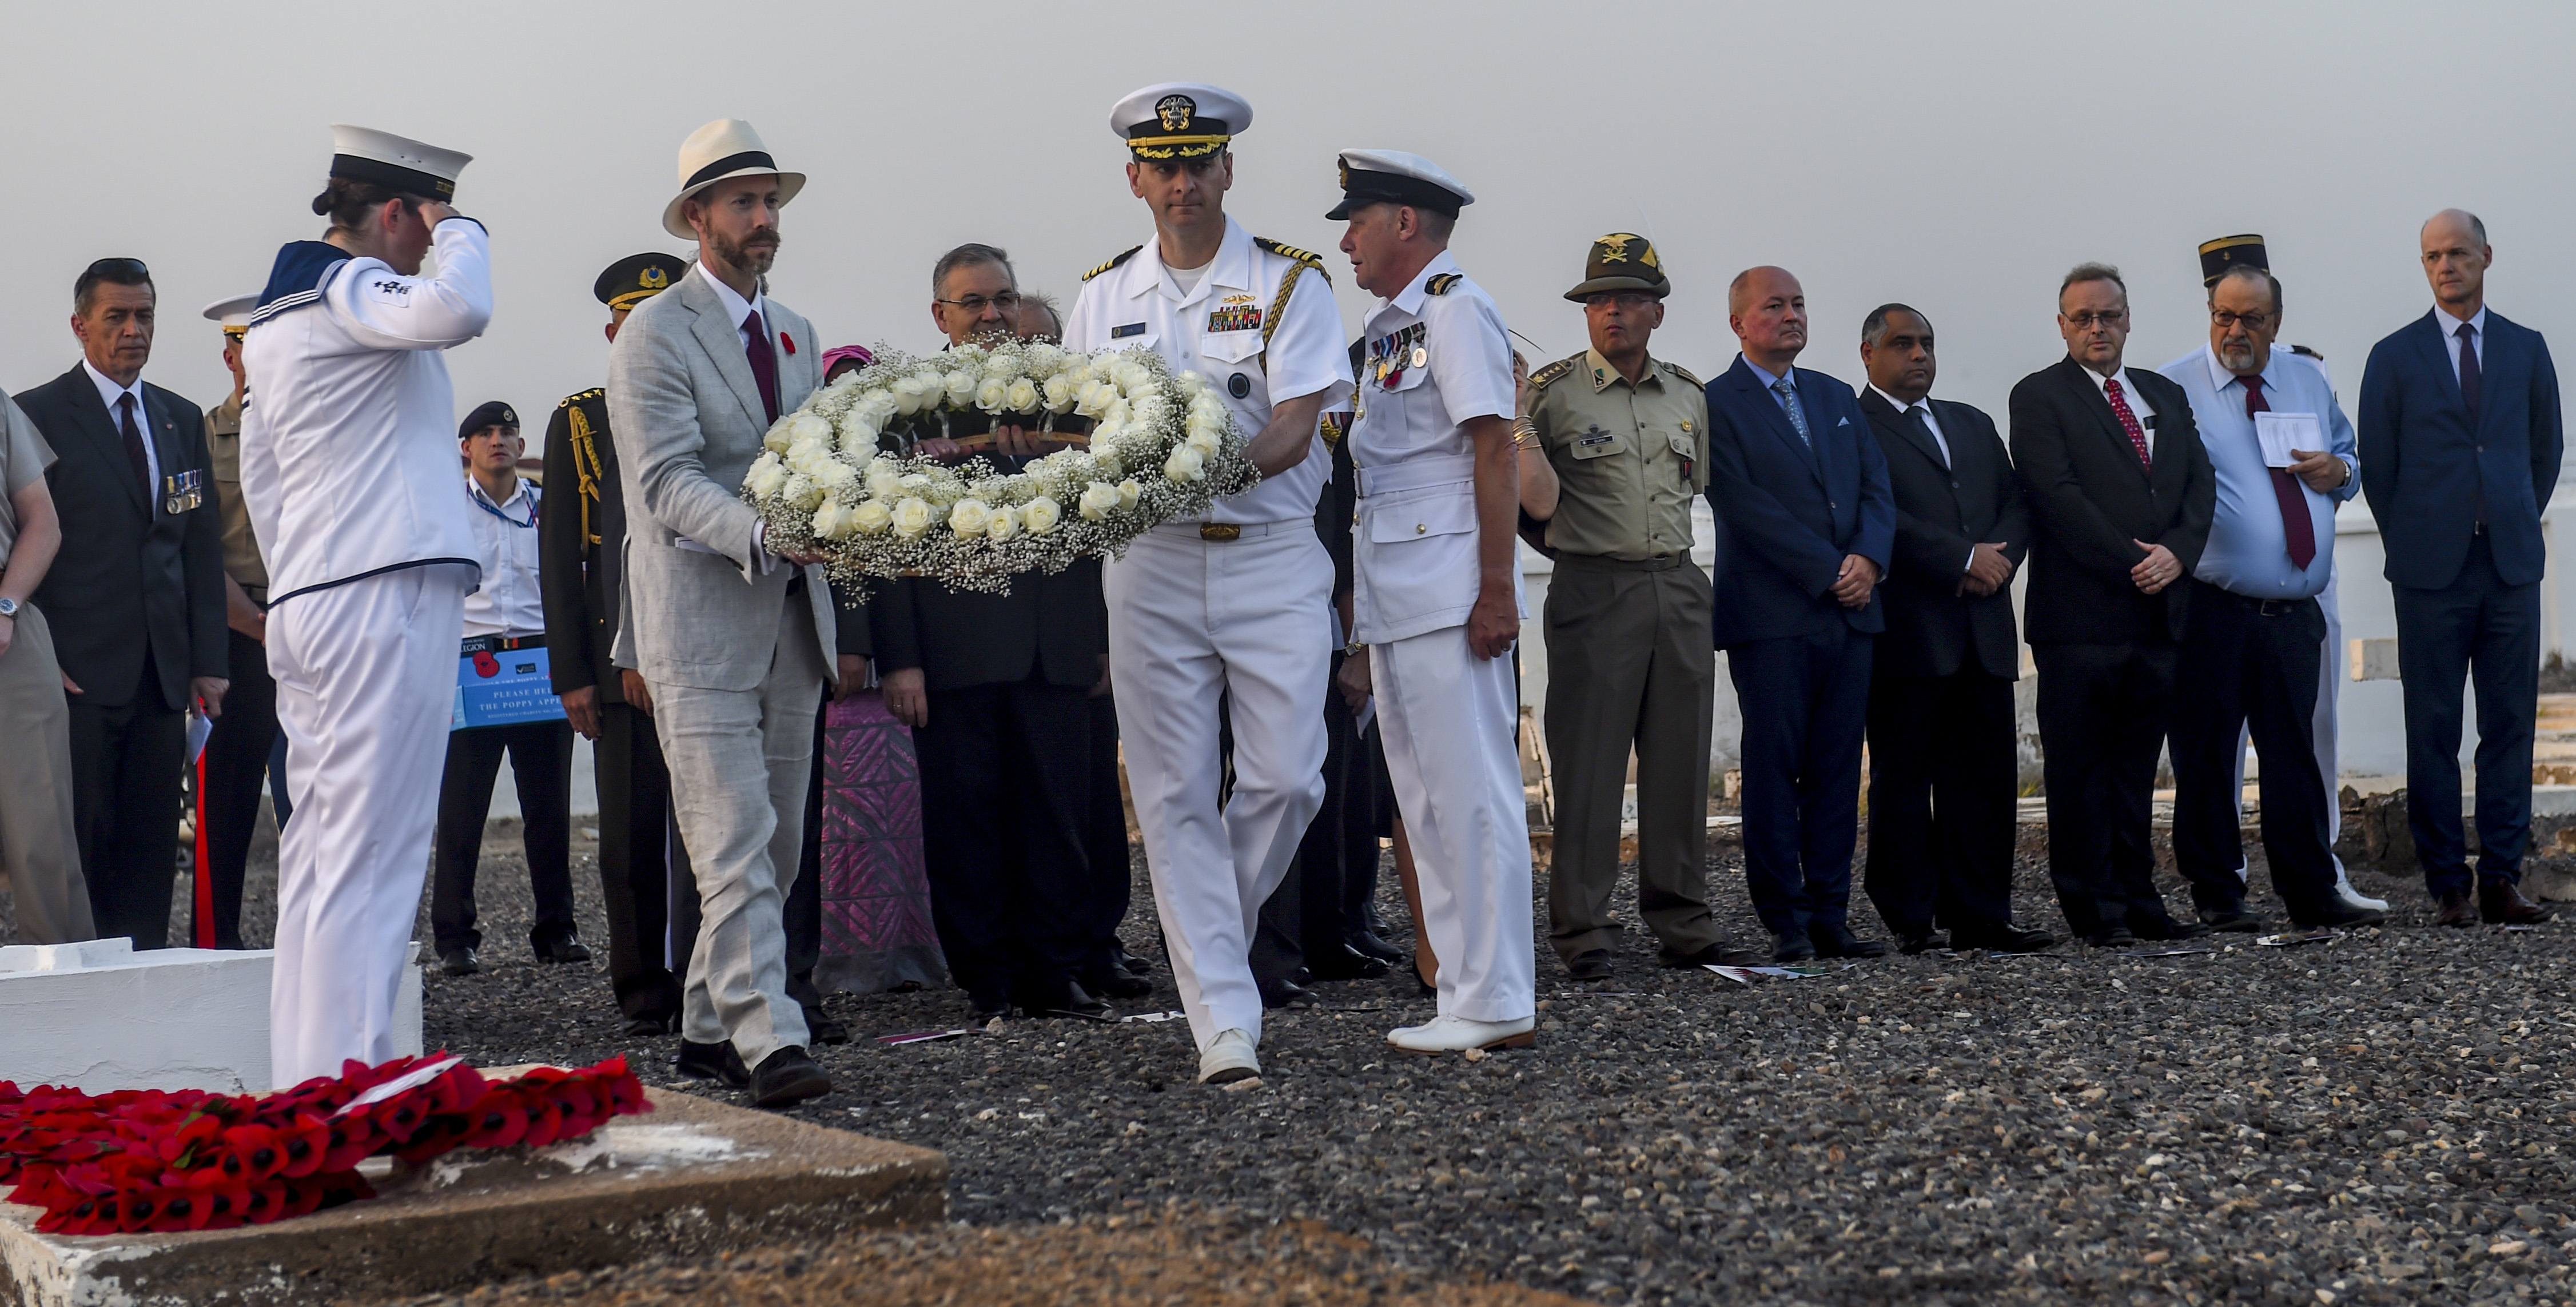 J. Alexander Hamilton (left), Deputy Chief of Mission of U.S. Embassy to the Republic of Djibouti, and U.S. Navy Capt. John Tully, senior defense official and defense attaché, walk to lay a wreath during a Remembrance Day ceremony at the Djibouti New European Cemetery near Camp Lemonnier, Djibouti, Nov. 7, 2017. Service members from Combined Joint Task Force - Horn of Africa joined other representatives of the United States, the United Kingdom, Russia, the Commonwealth, and the European Union as they honored service members who gave their lives during wartime. (U.S. Air Force photo by Staff Sgt. Timothy Moore)